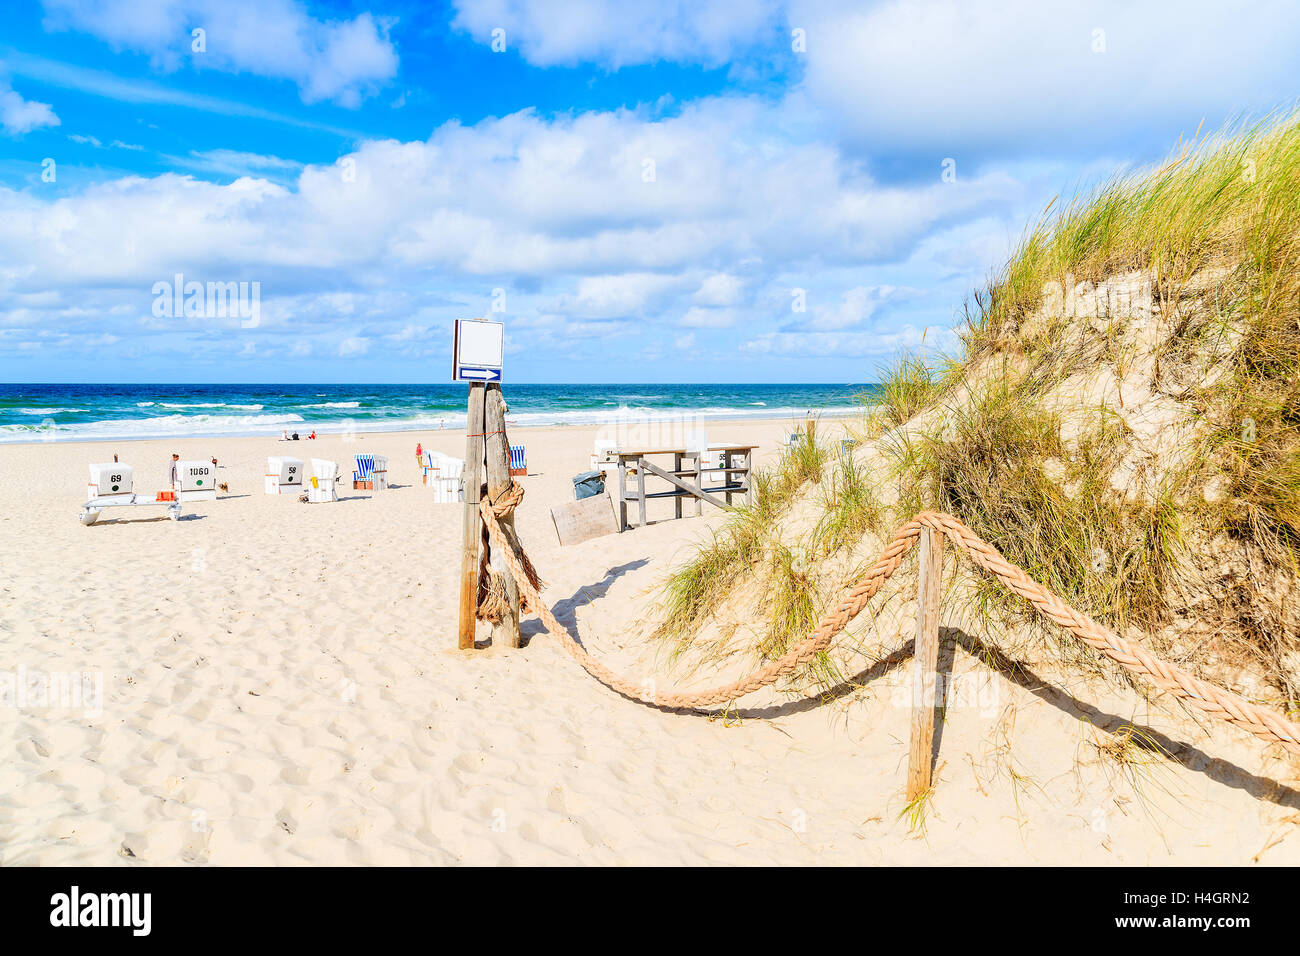 Entrance to sandy beach in Kampen village, Sylt island, Germany Stock Photo